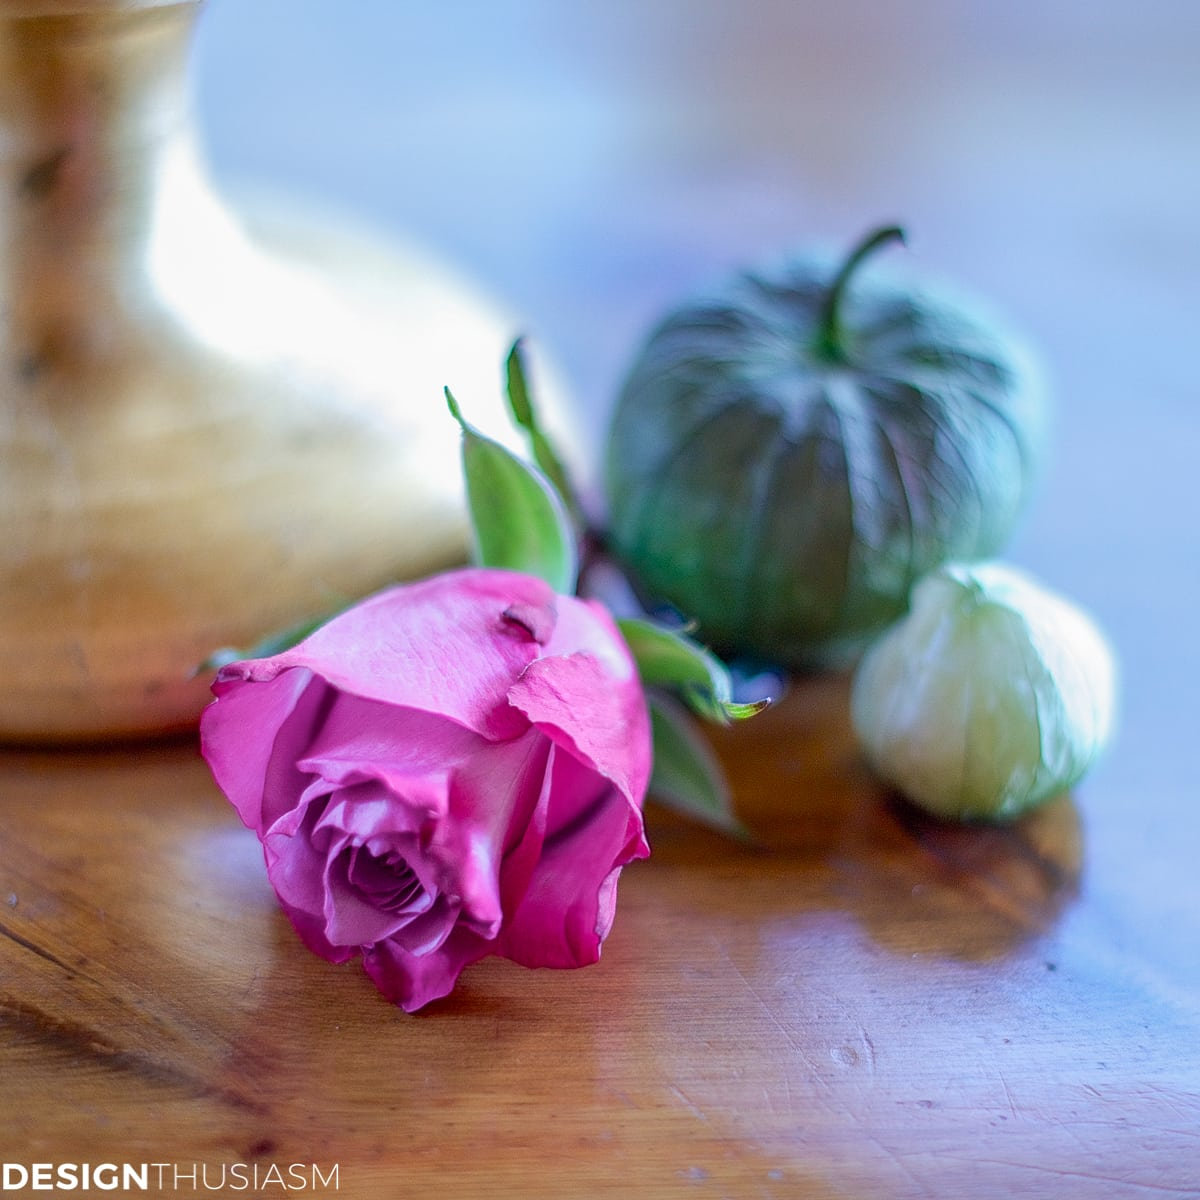 rose and tomatillos